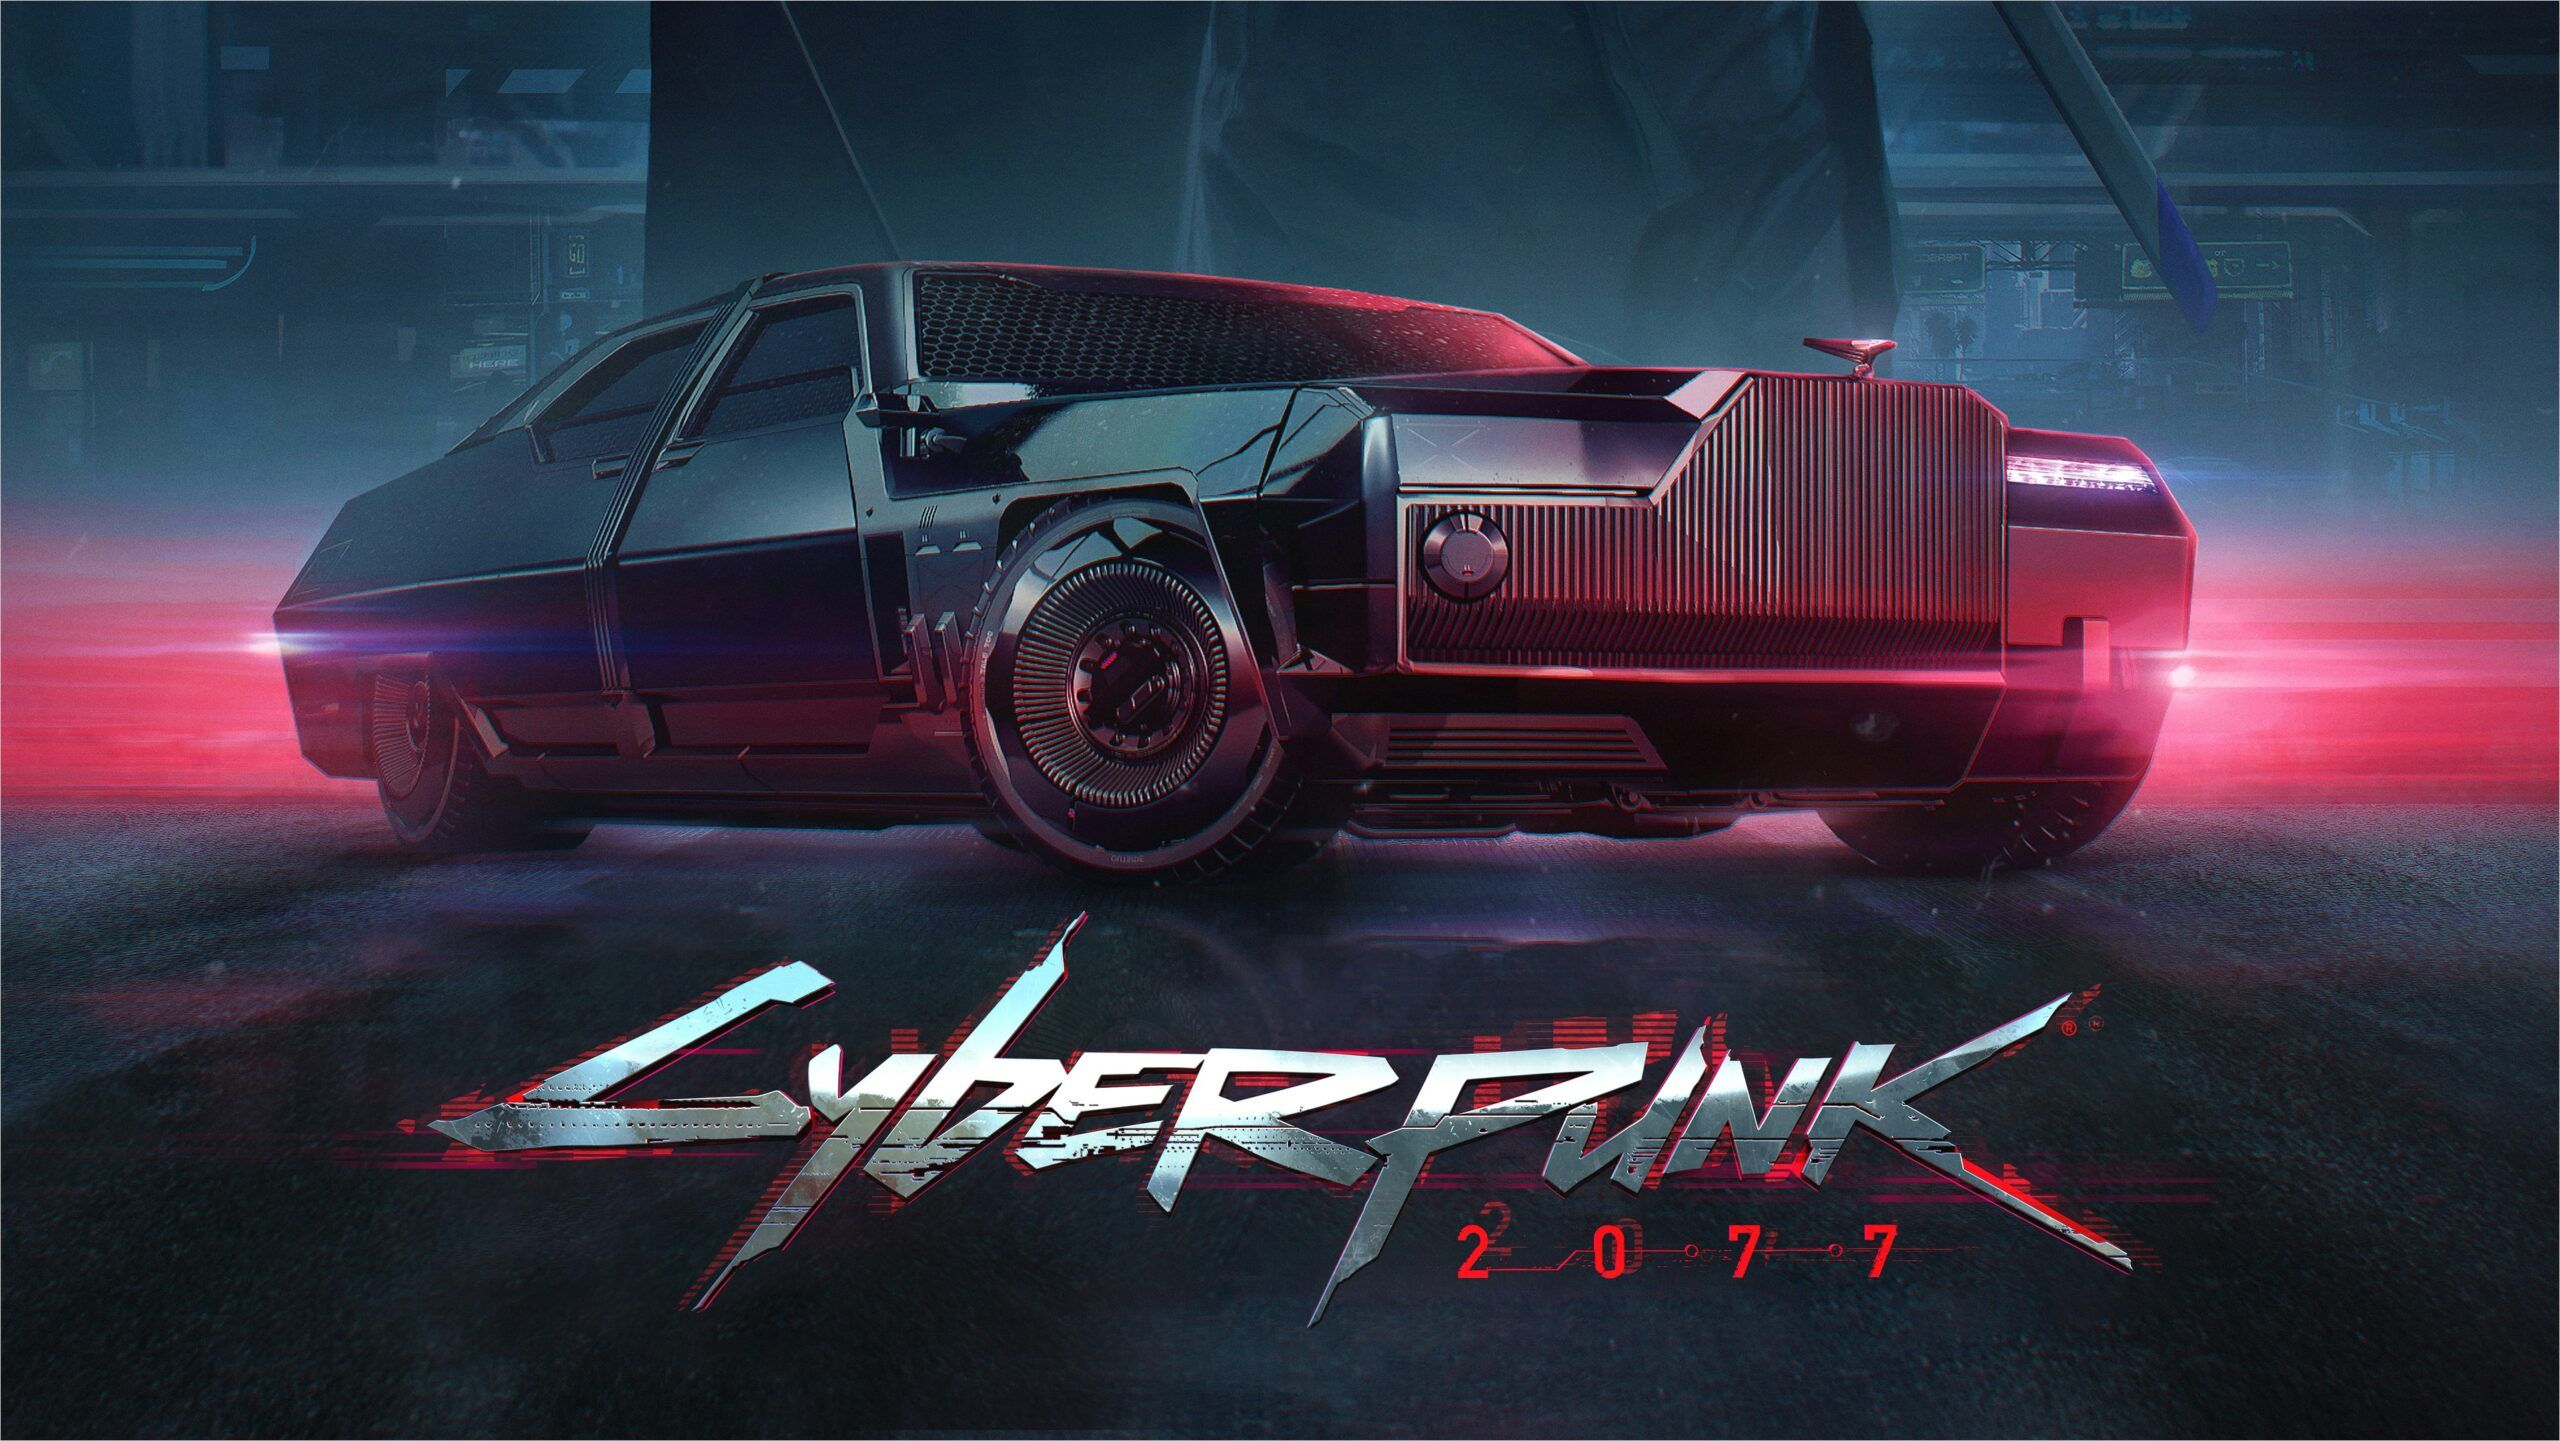 4k Cyberpunk 2077 Wallpaper In 2020 Cyberpunk 2077 Pc Games Wallpapers Cyberpunk